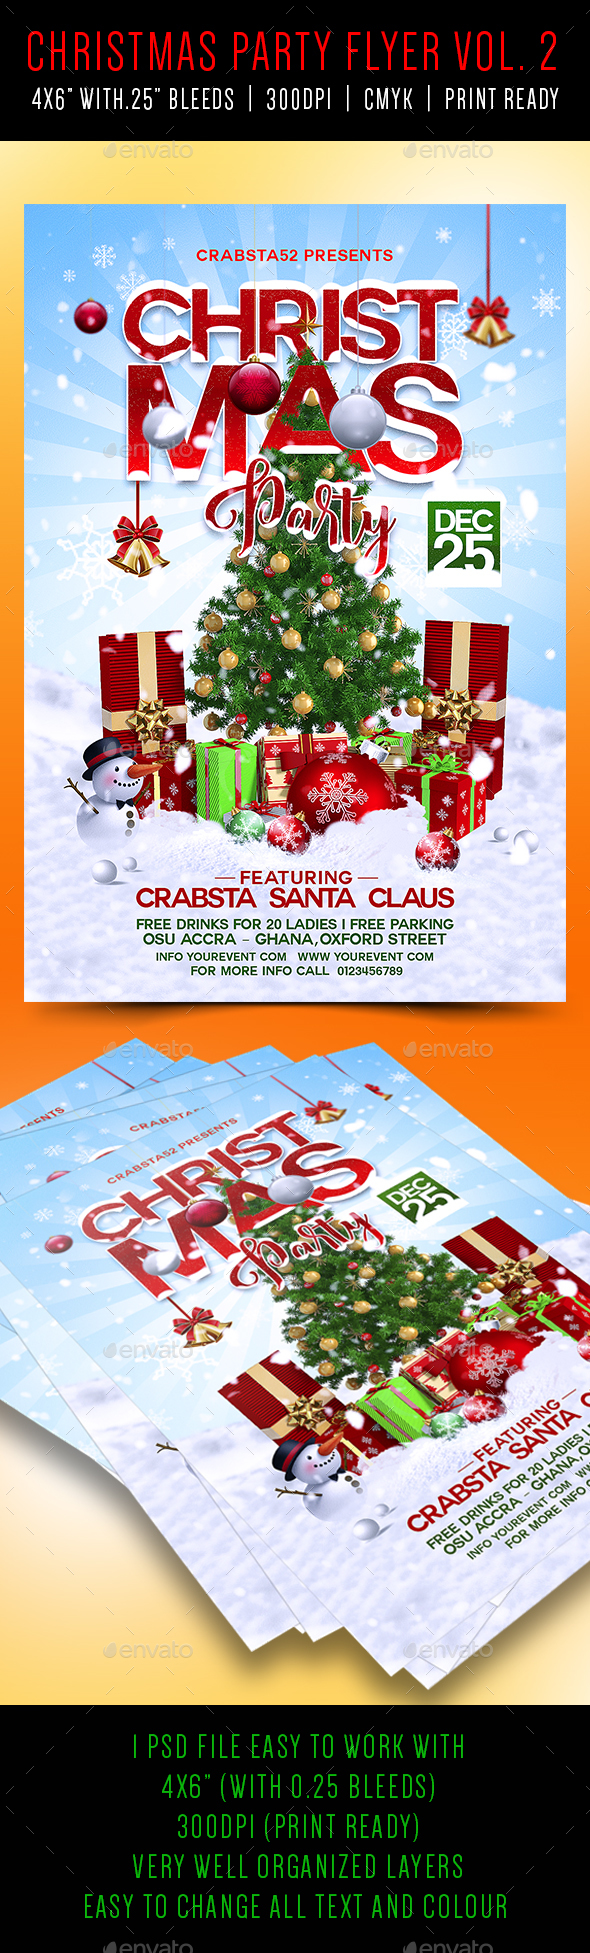 Christmas Party Flyer Vol 2